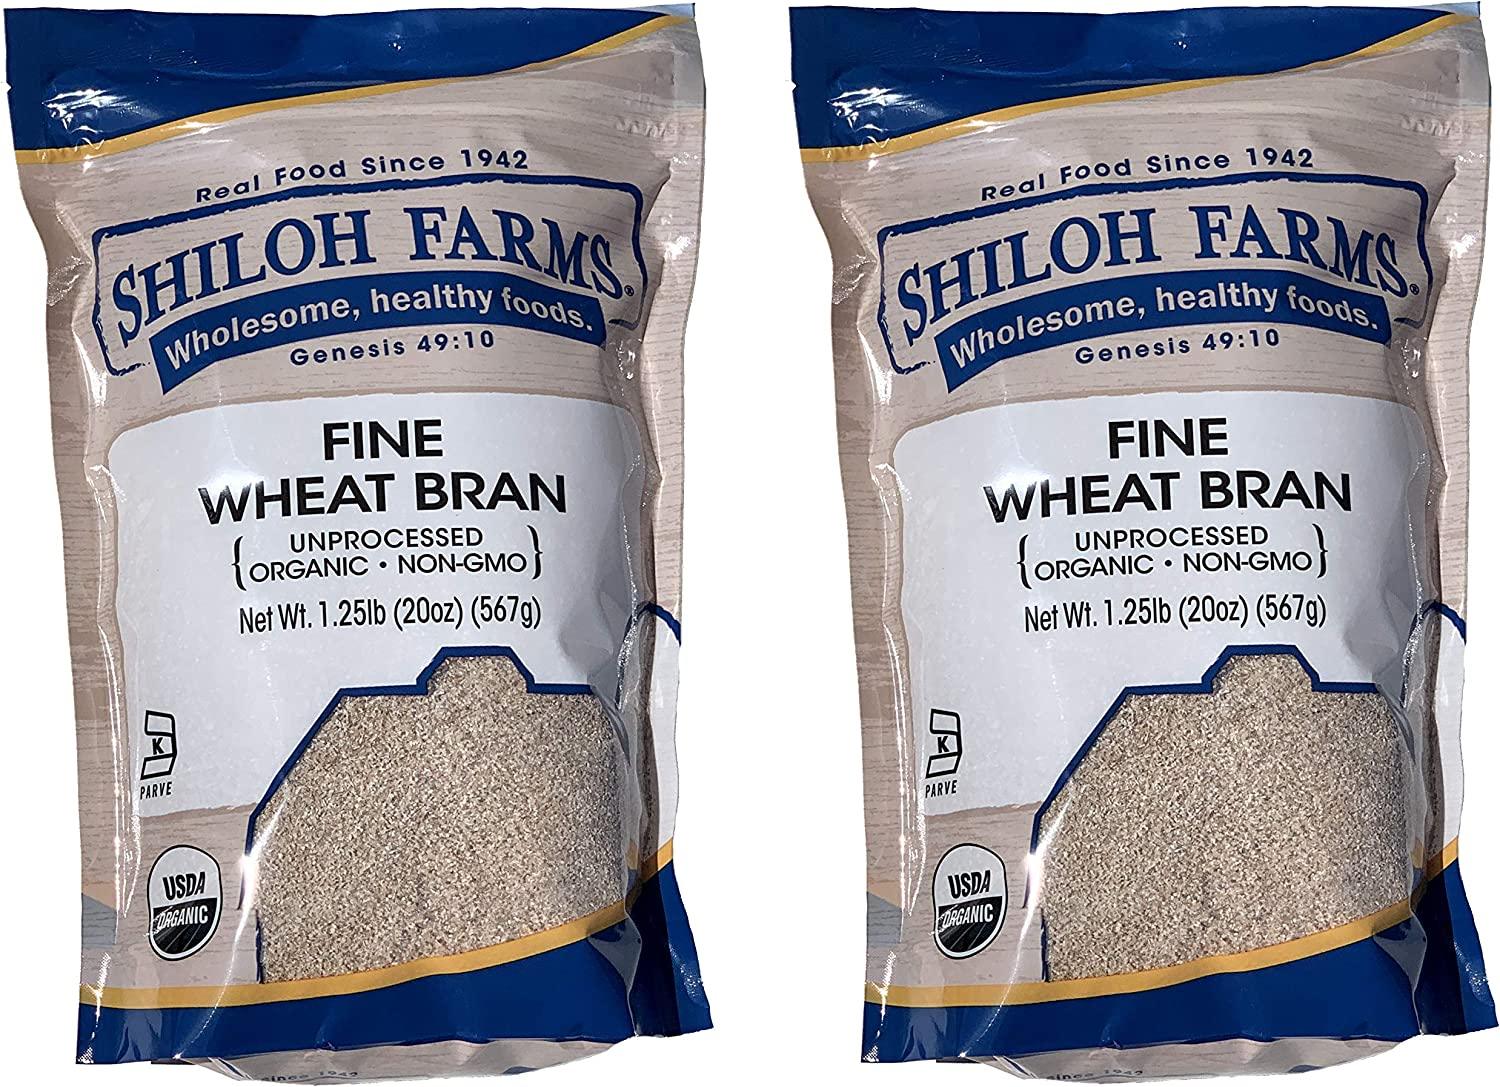 Shiloh Farms Classic Beige Package (Pack of 2)